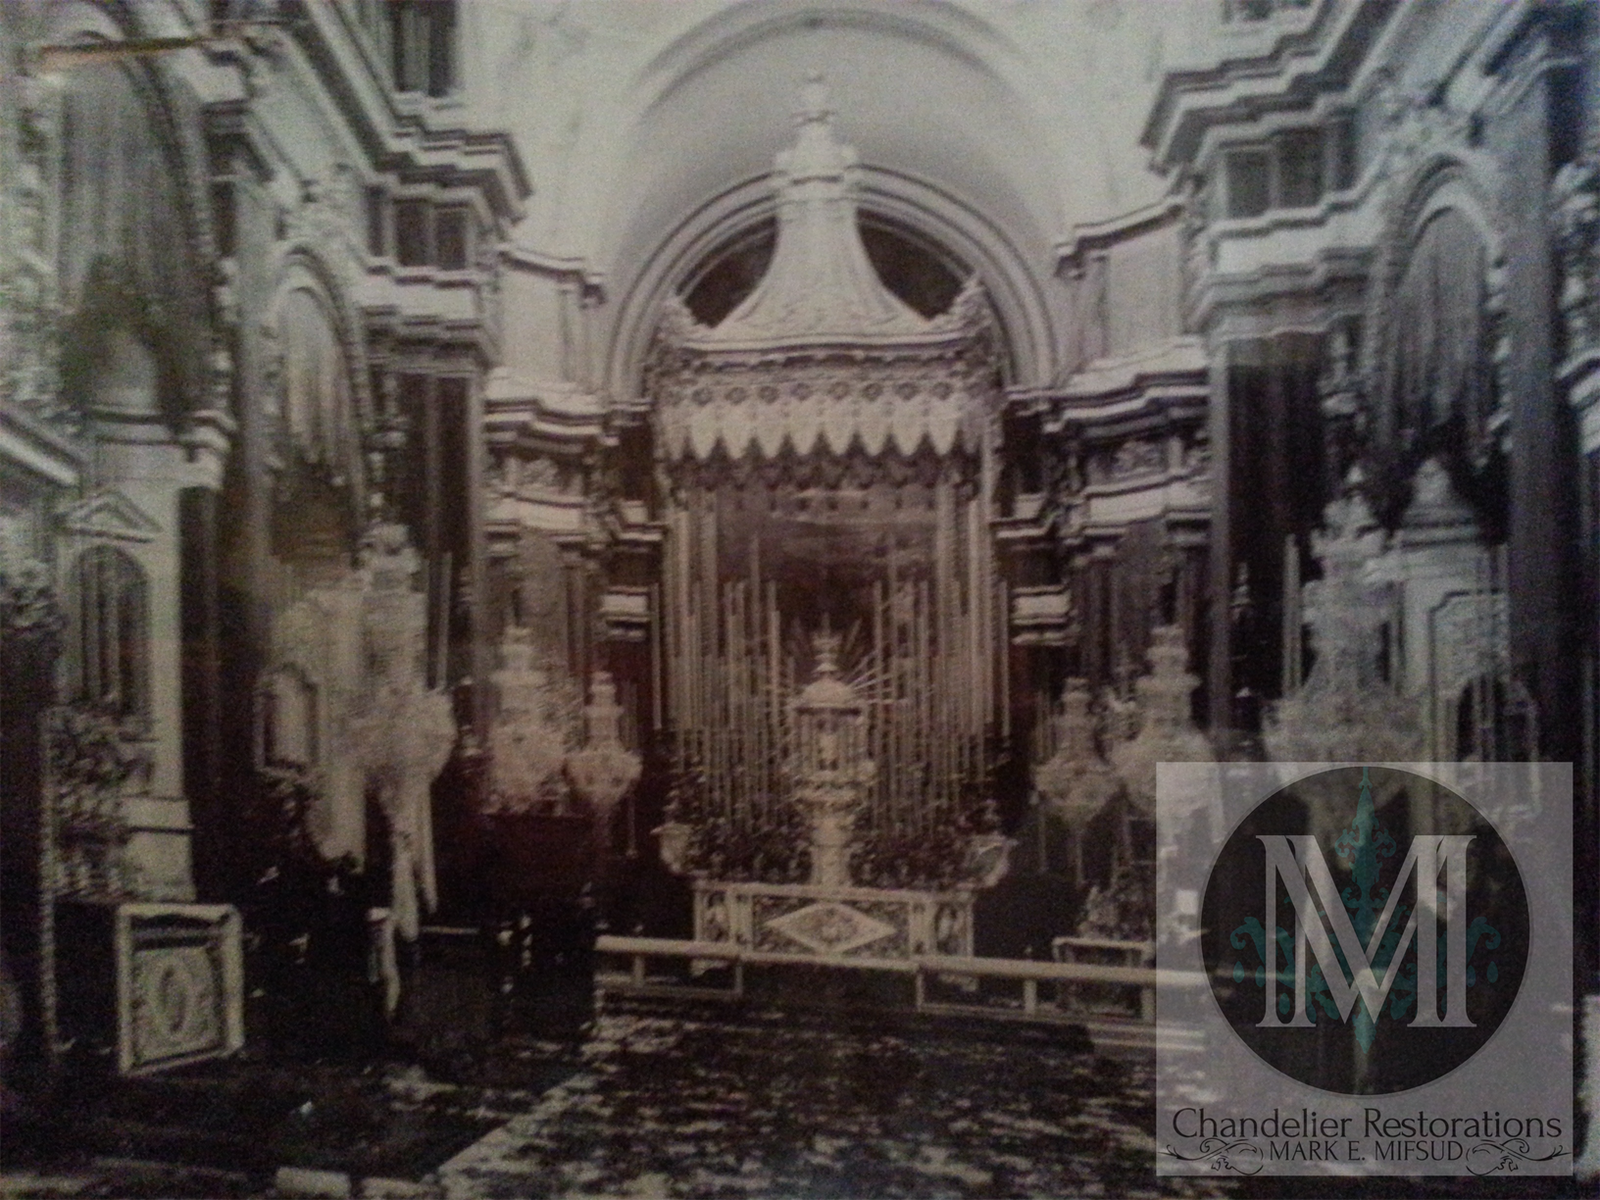 Old photo of the church, showing the original chandeliers